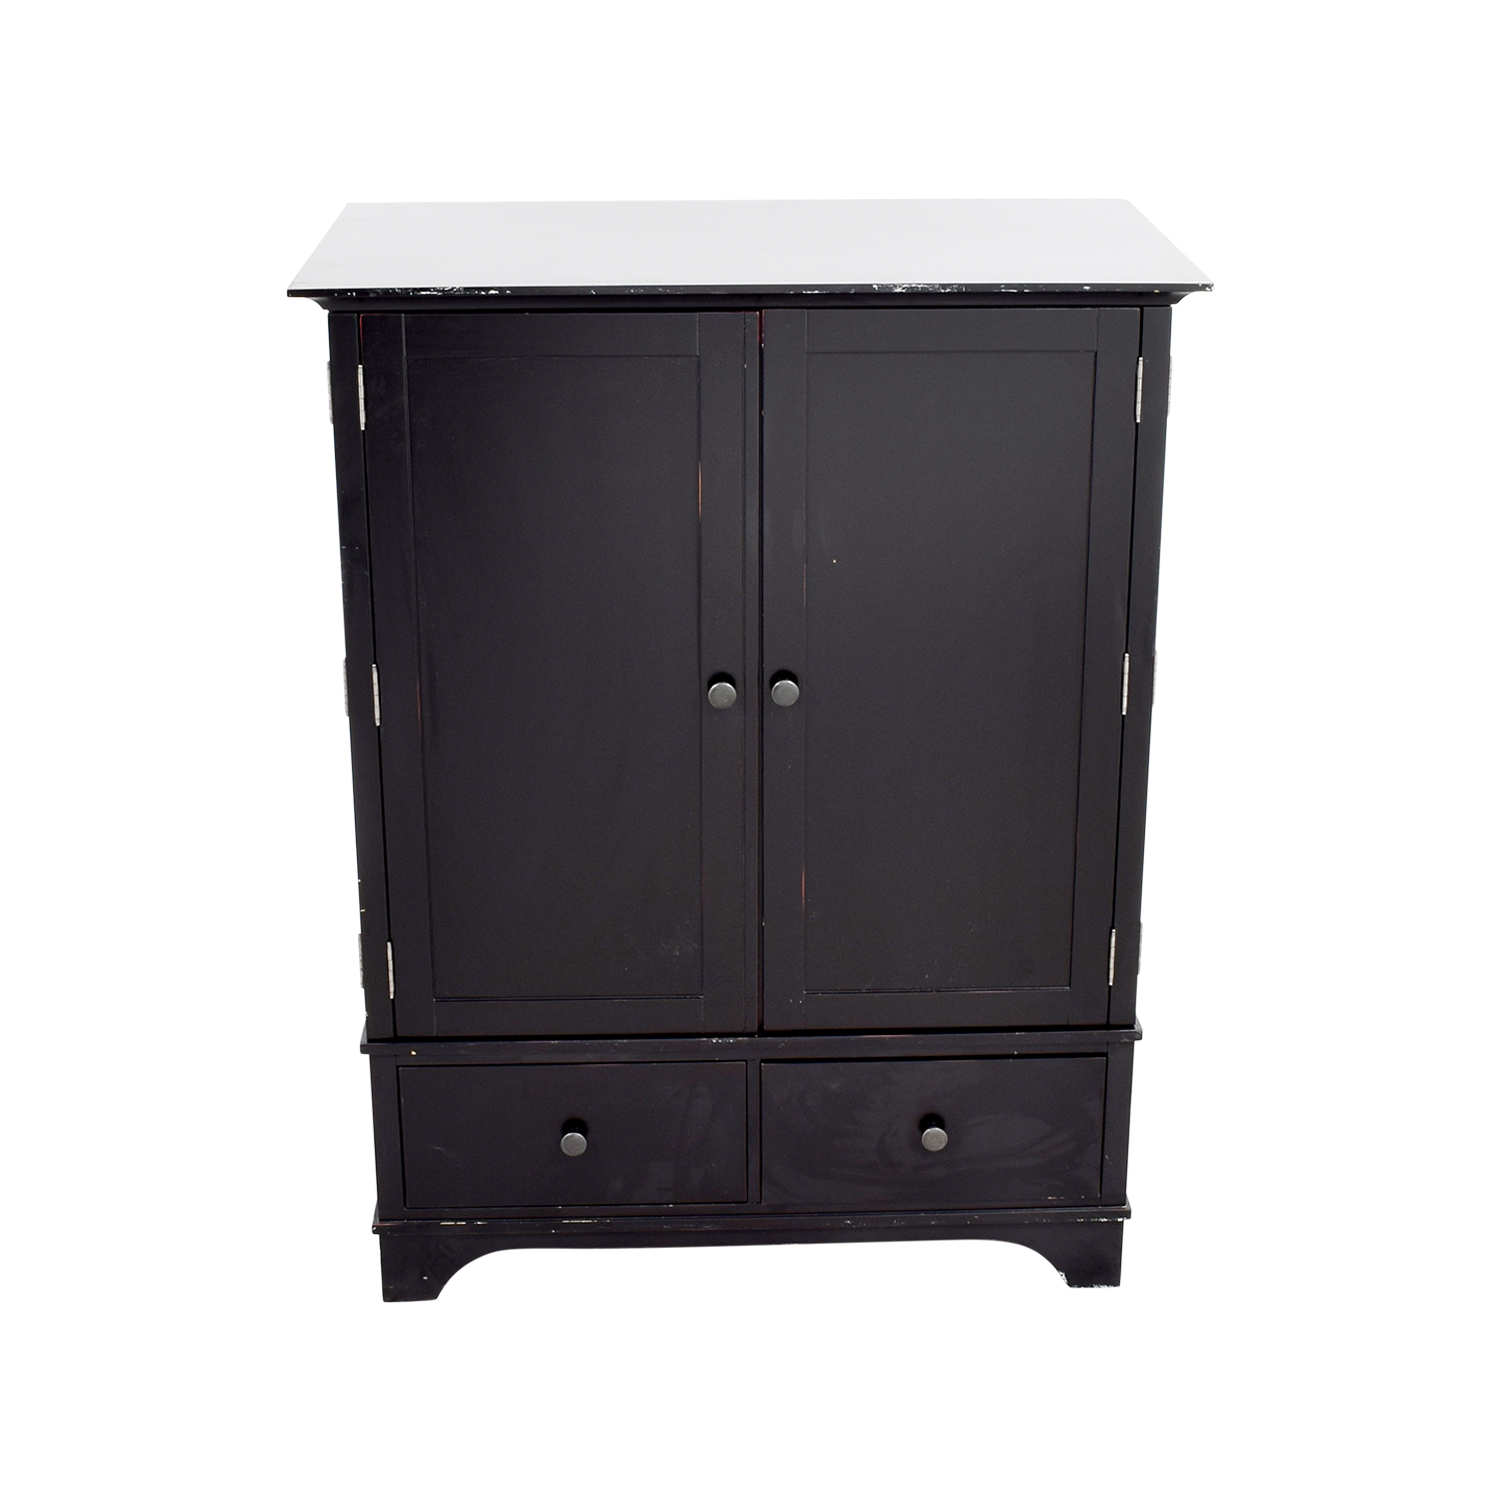 Pottery Barn Pottery Barn Media Cabinet price